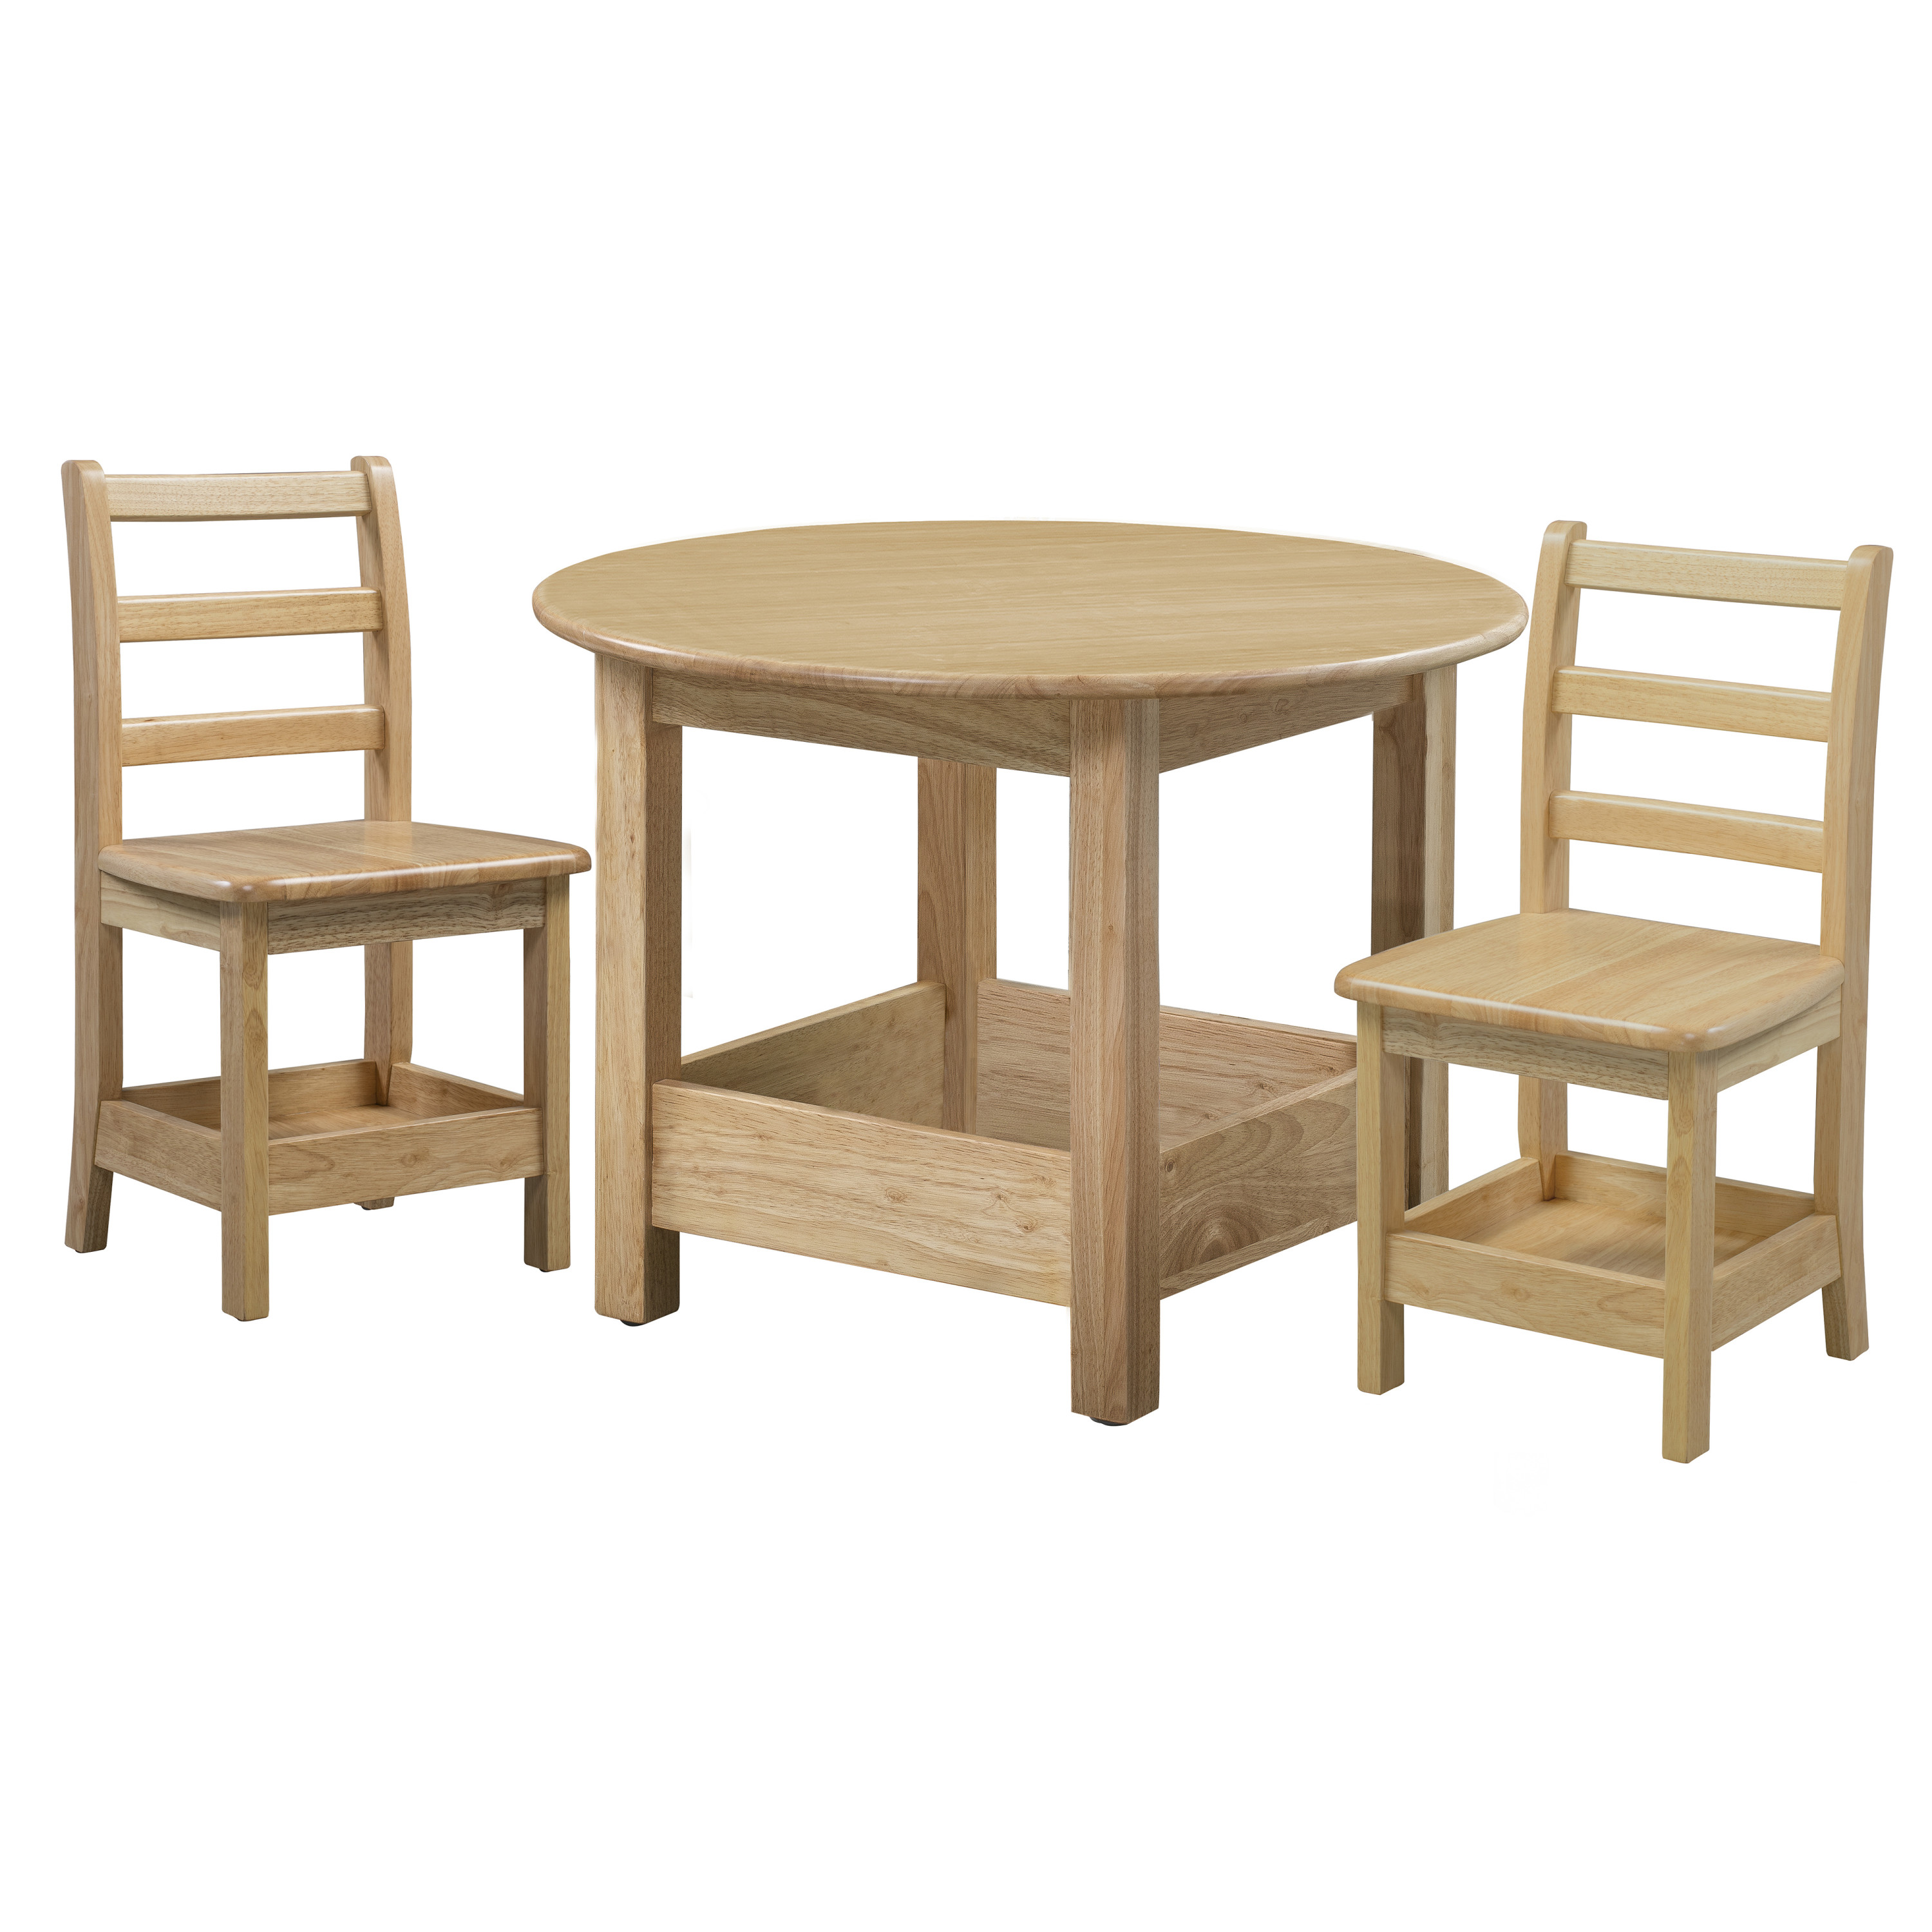 Sit n' Stash Round Table and Two 14in Chairs